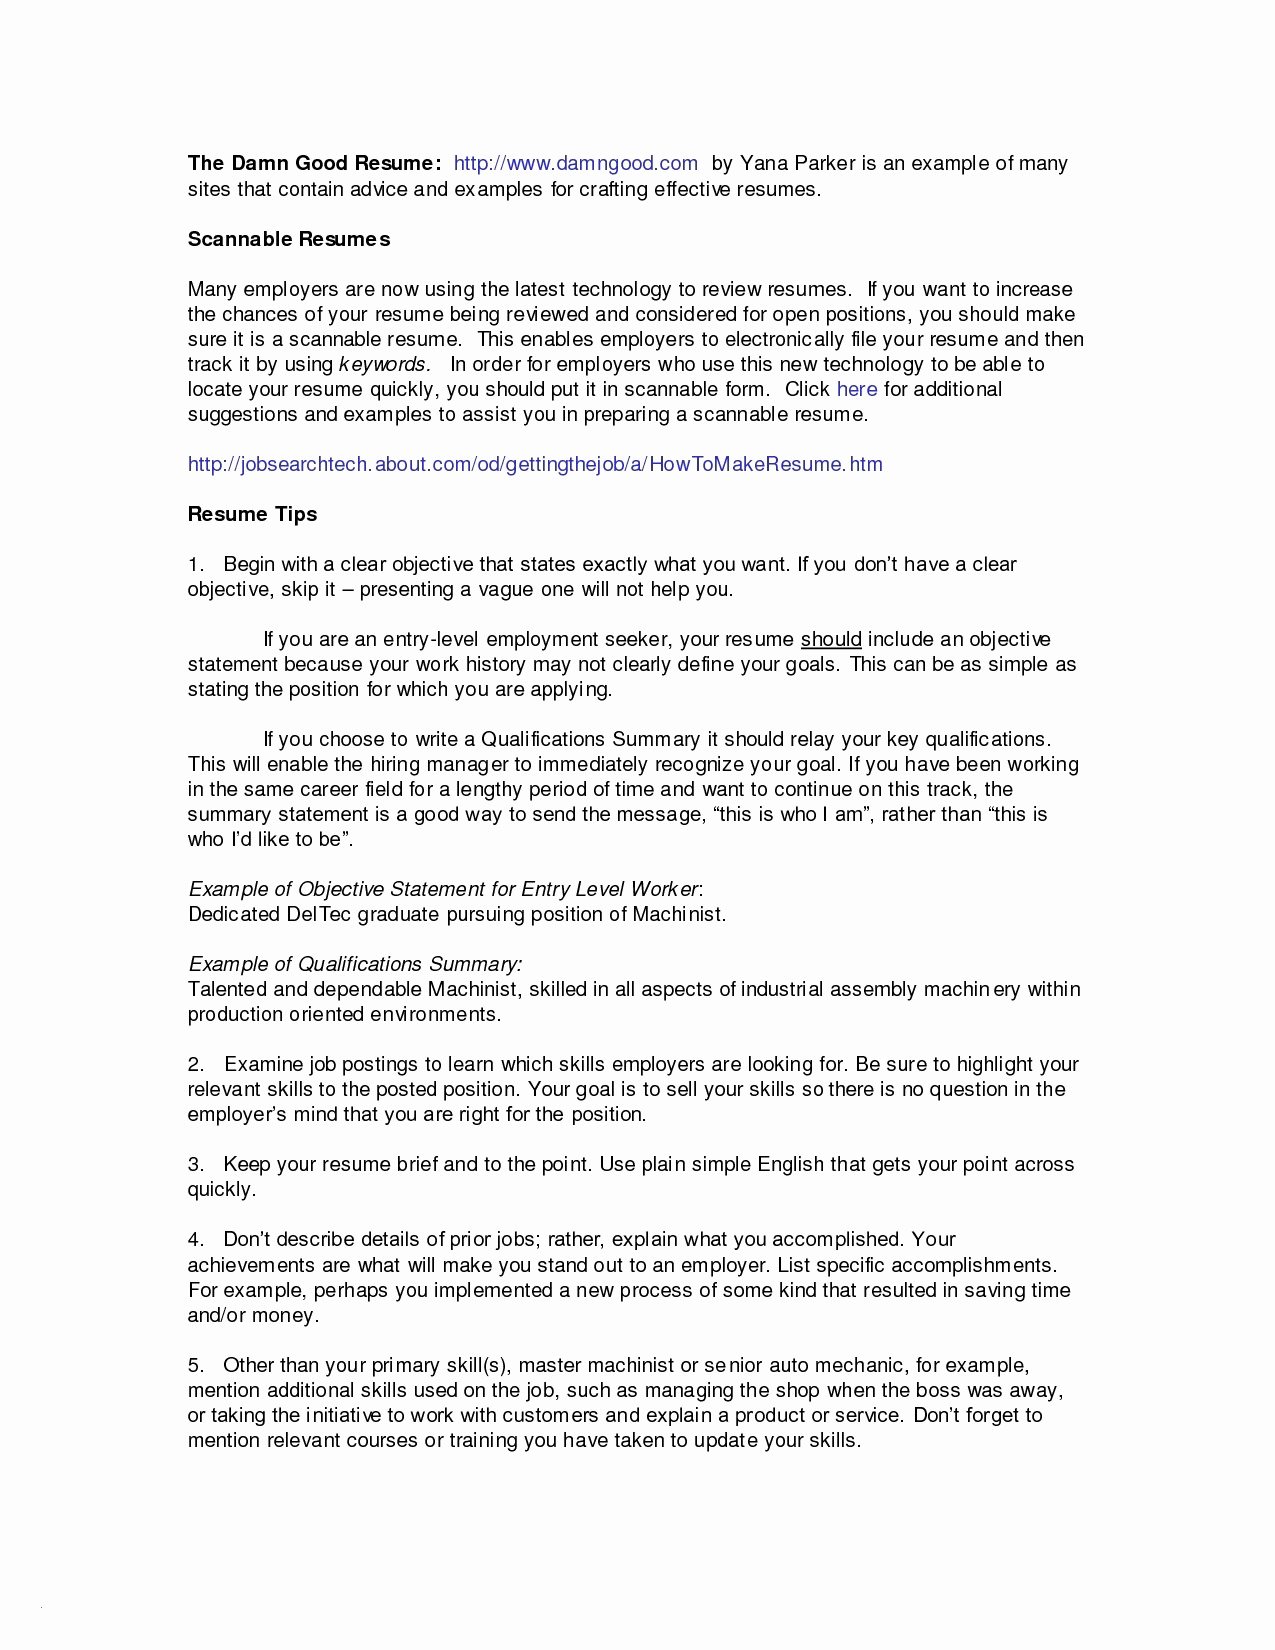 Medical assistant Summary Resume - Resume Samples for Medical assistant Fresh Medical assistant Resumes